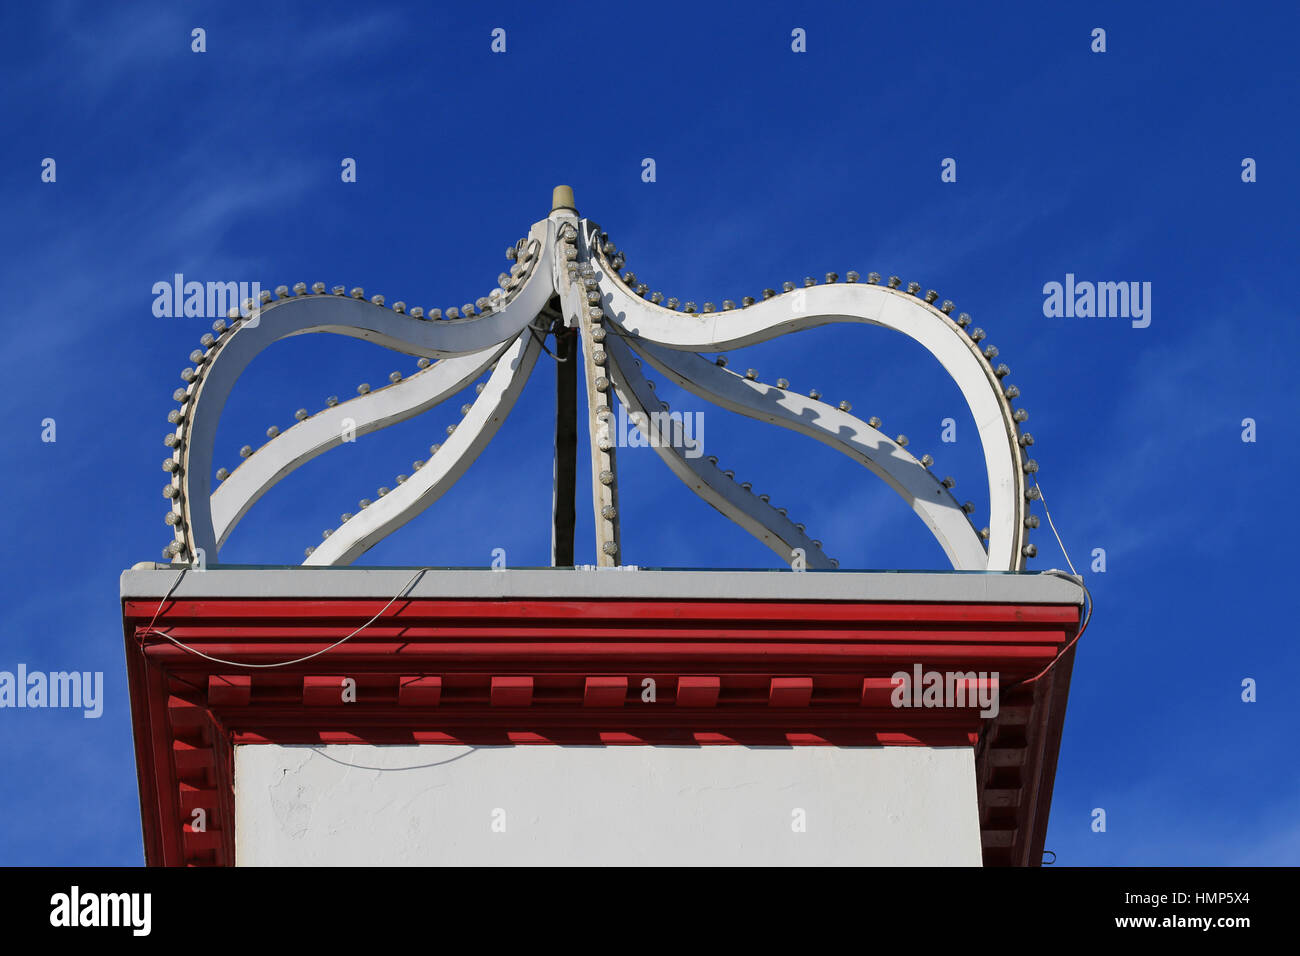 Architectural feature formed of curves atop an amusement arcade - Stock Image